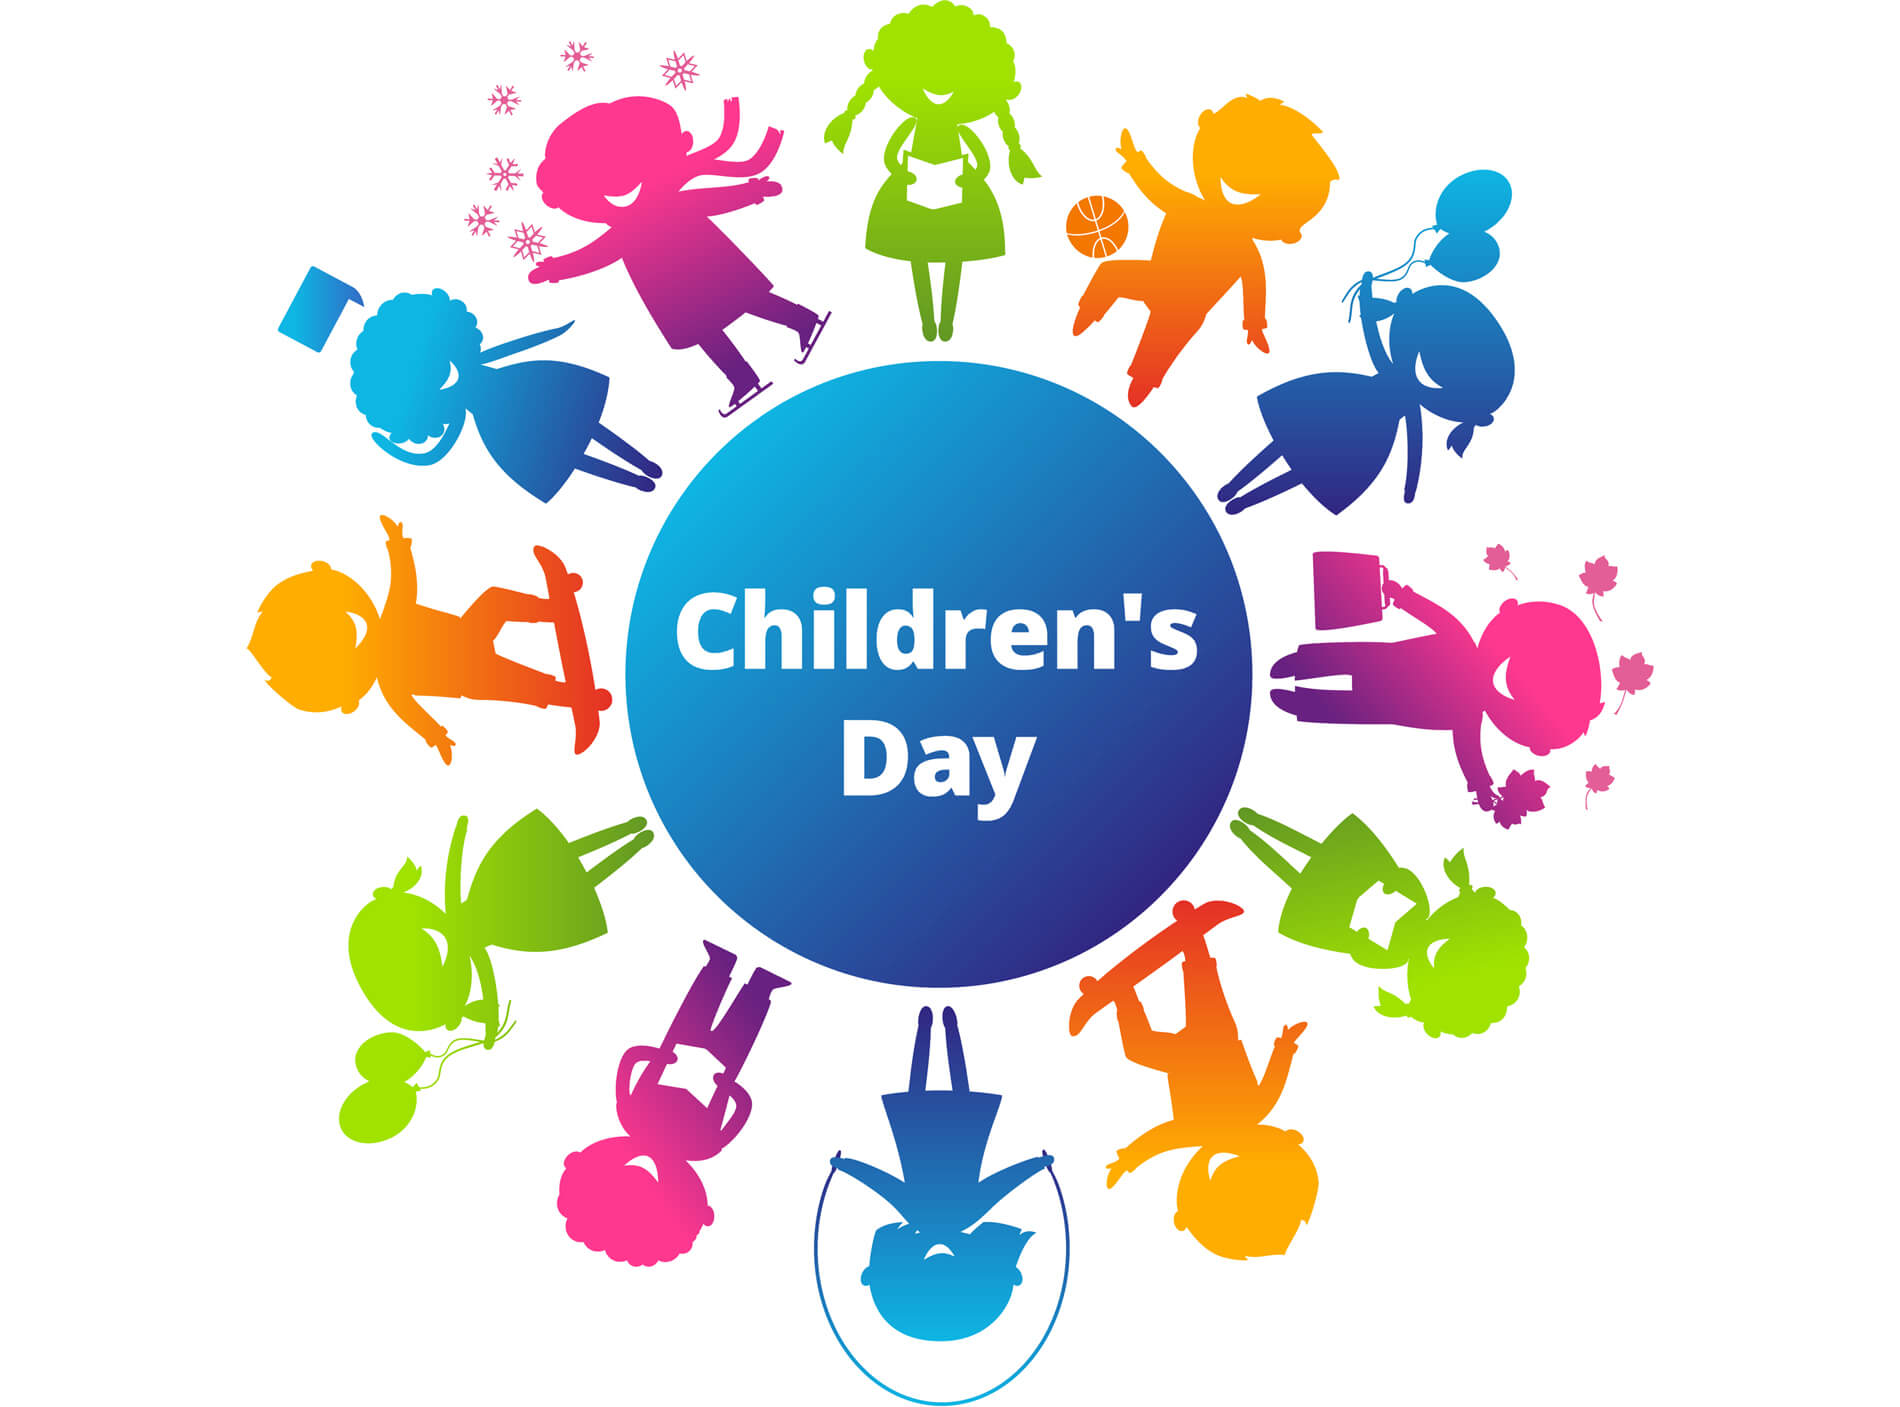 childrens day wishes hd image